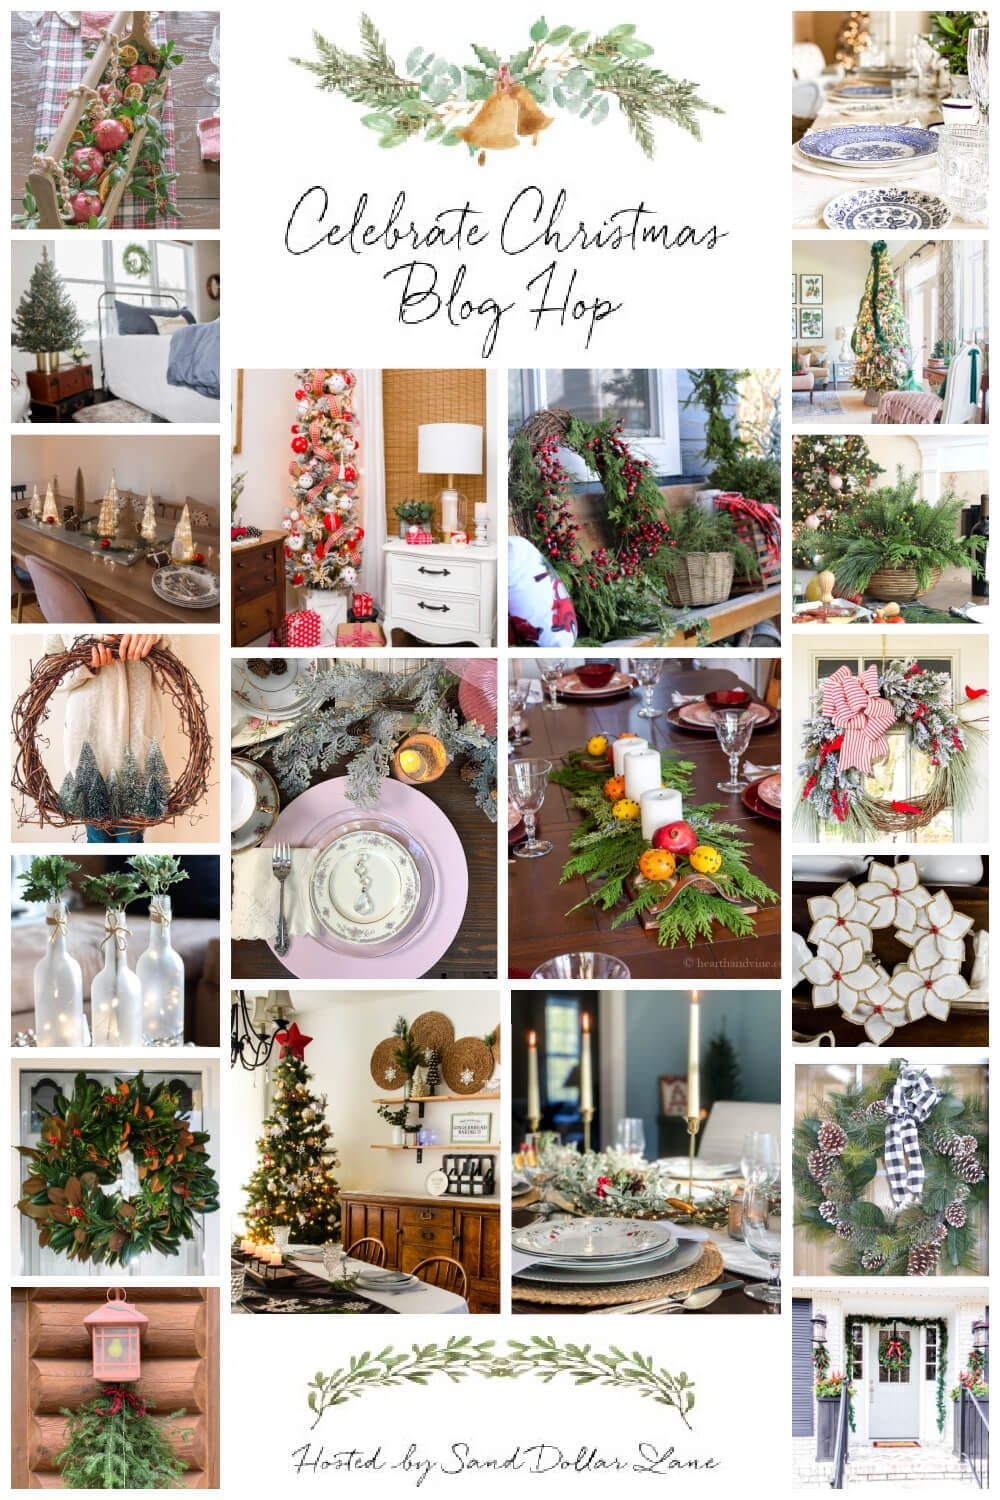 Celebrating Christmas Blog Hop: Trees, Wreaths, Doors, Tablescapes and Centerpieces